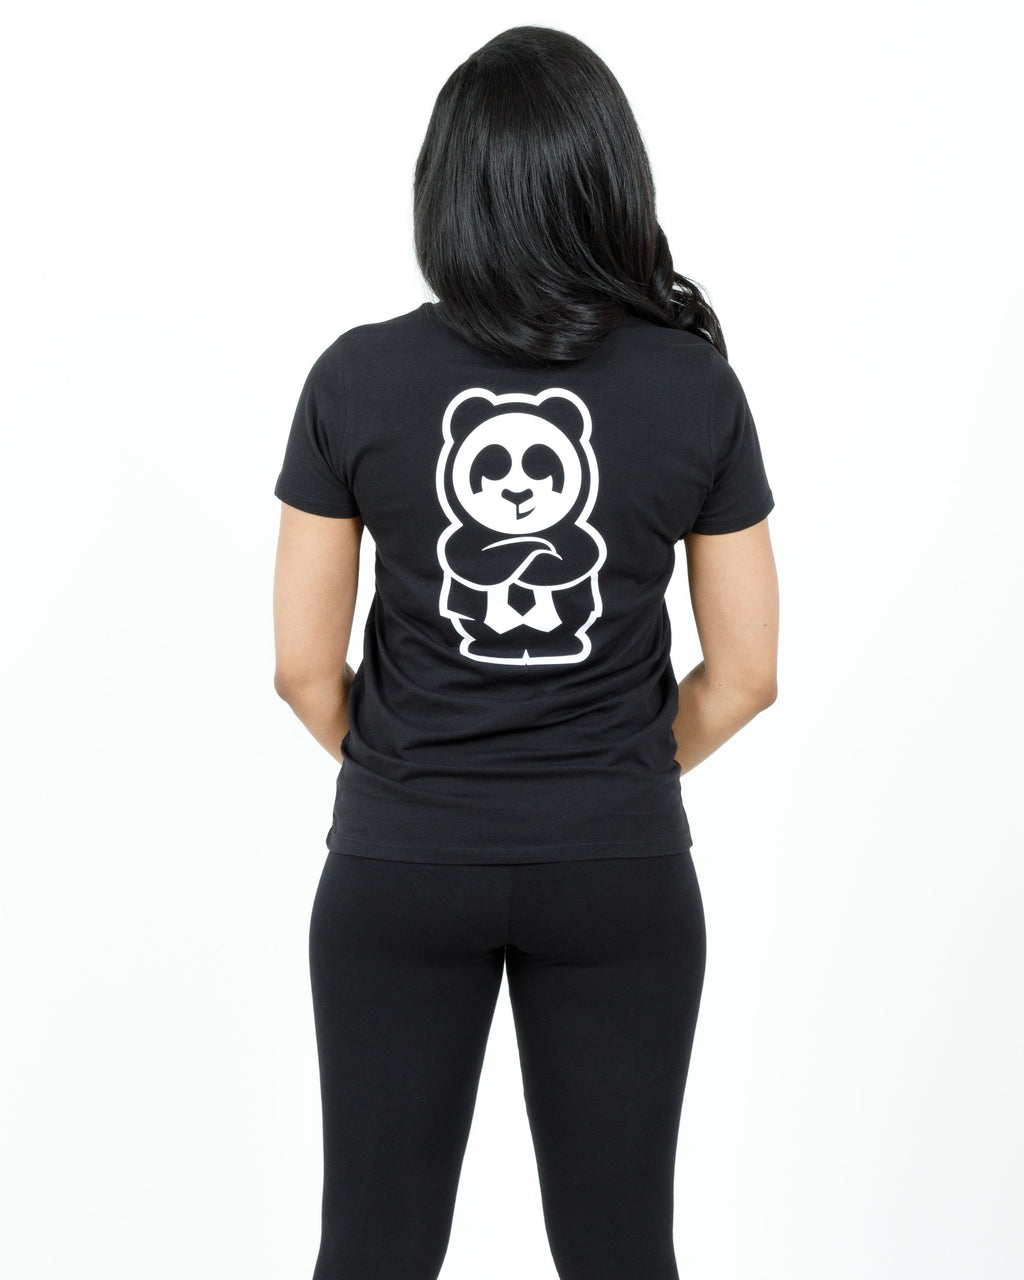 Women's Giant Panda Fam Tee (Black)